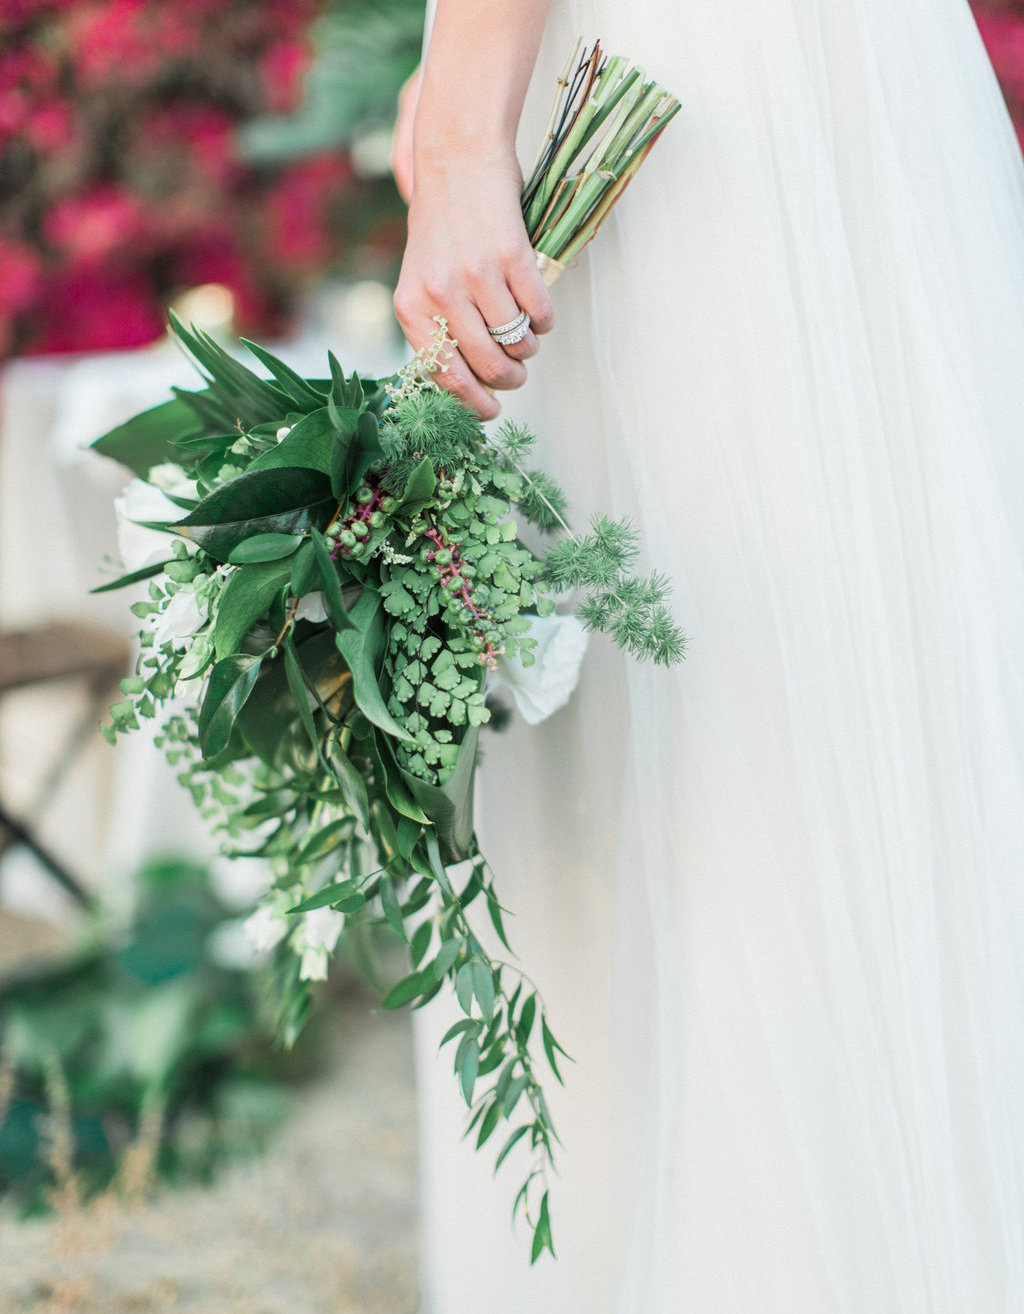 Bride holding greenery bouquet for wedding styled shoot